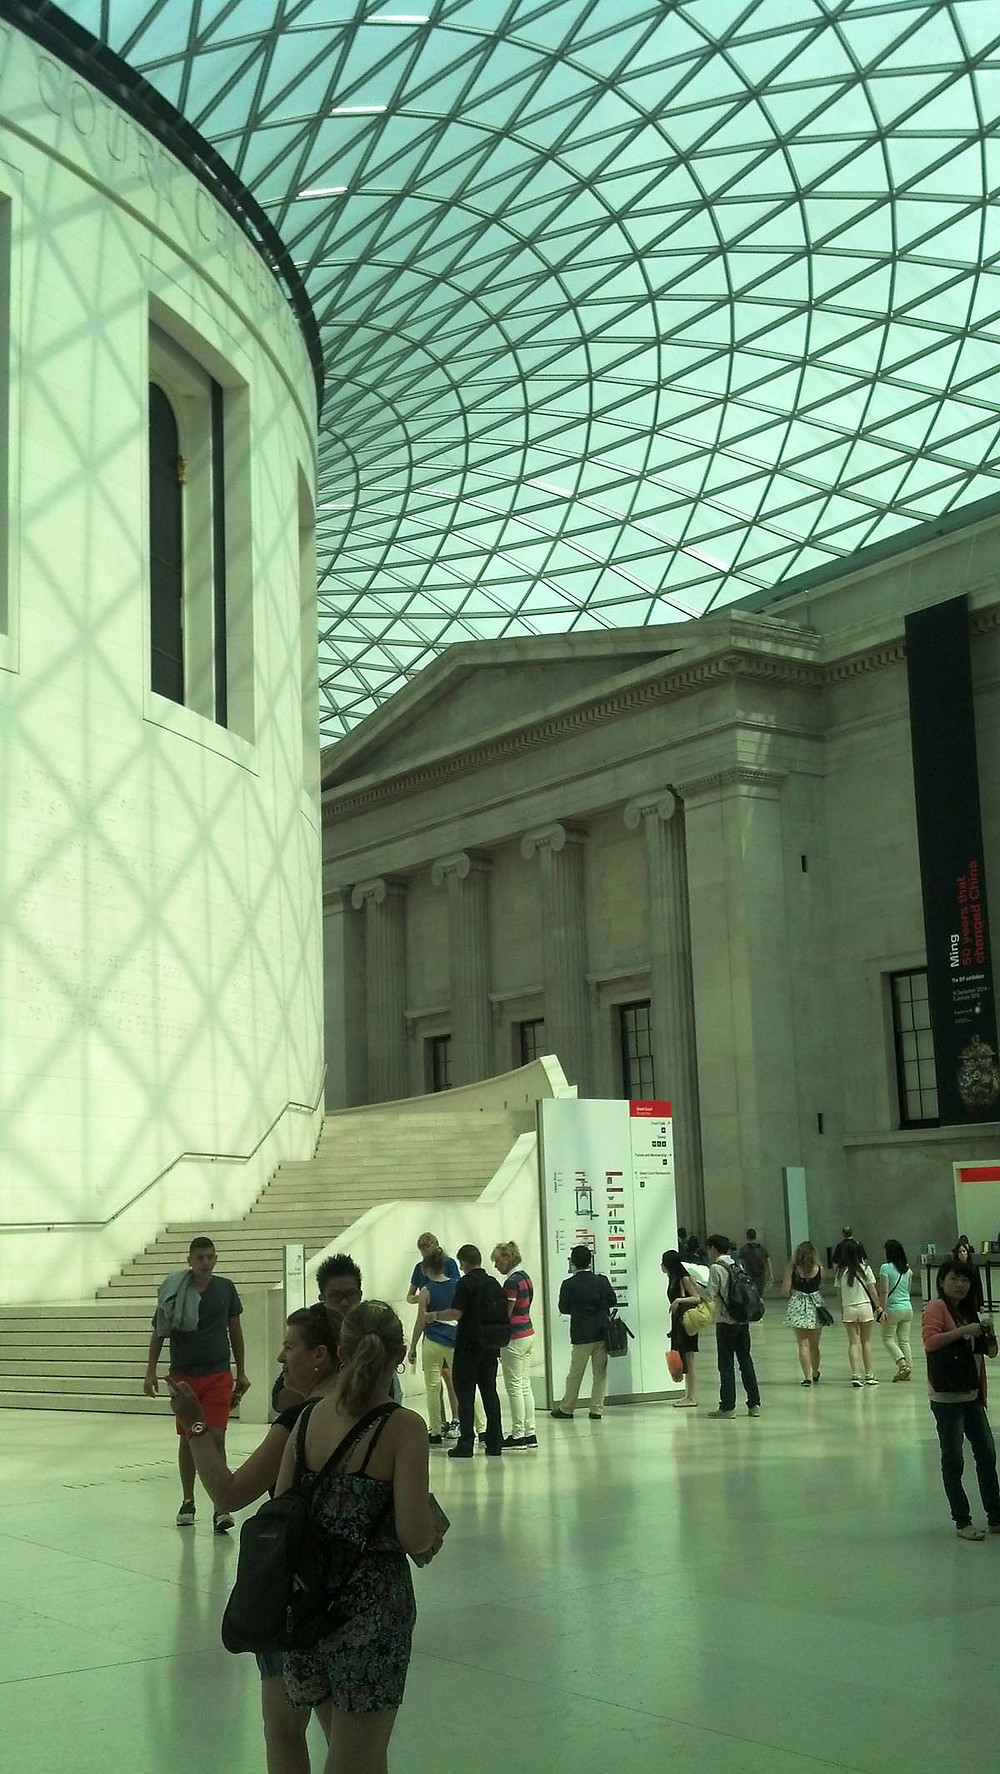 British Museum, London, England, 2014